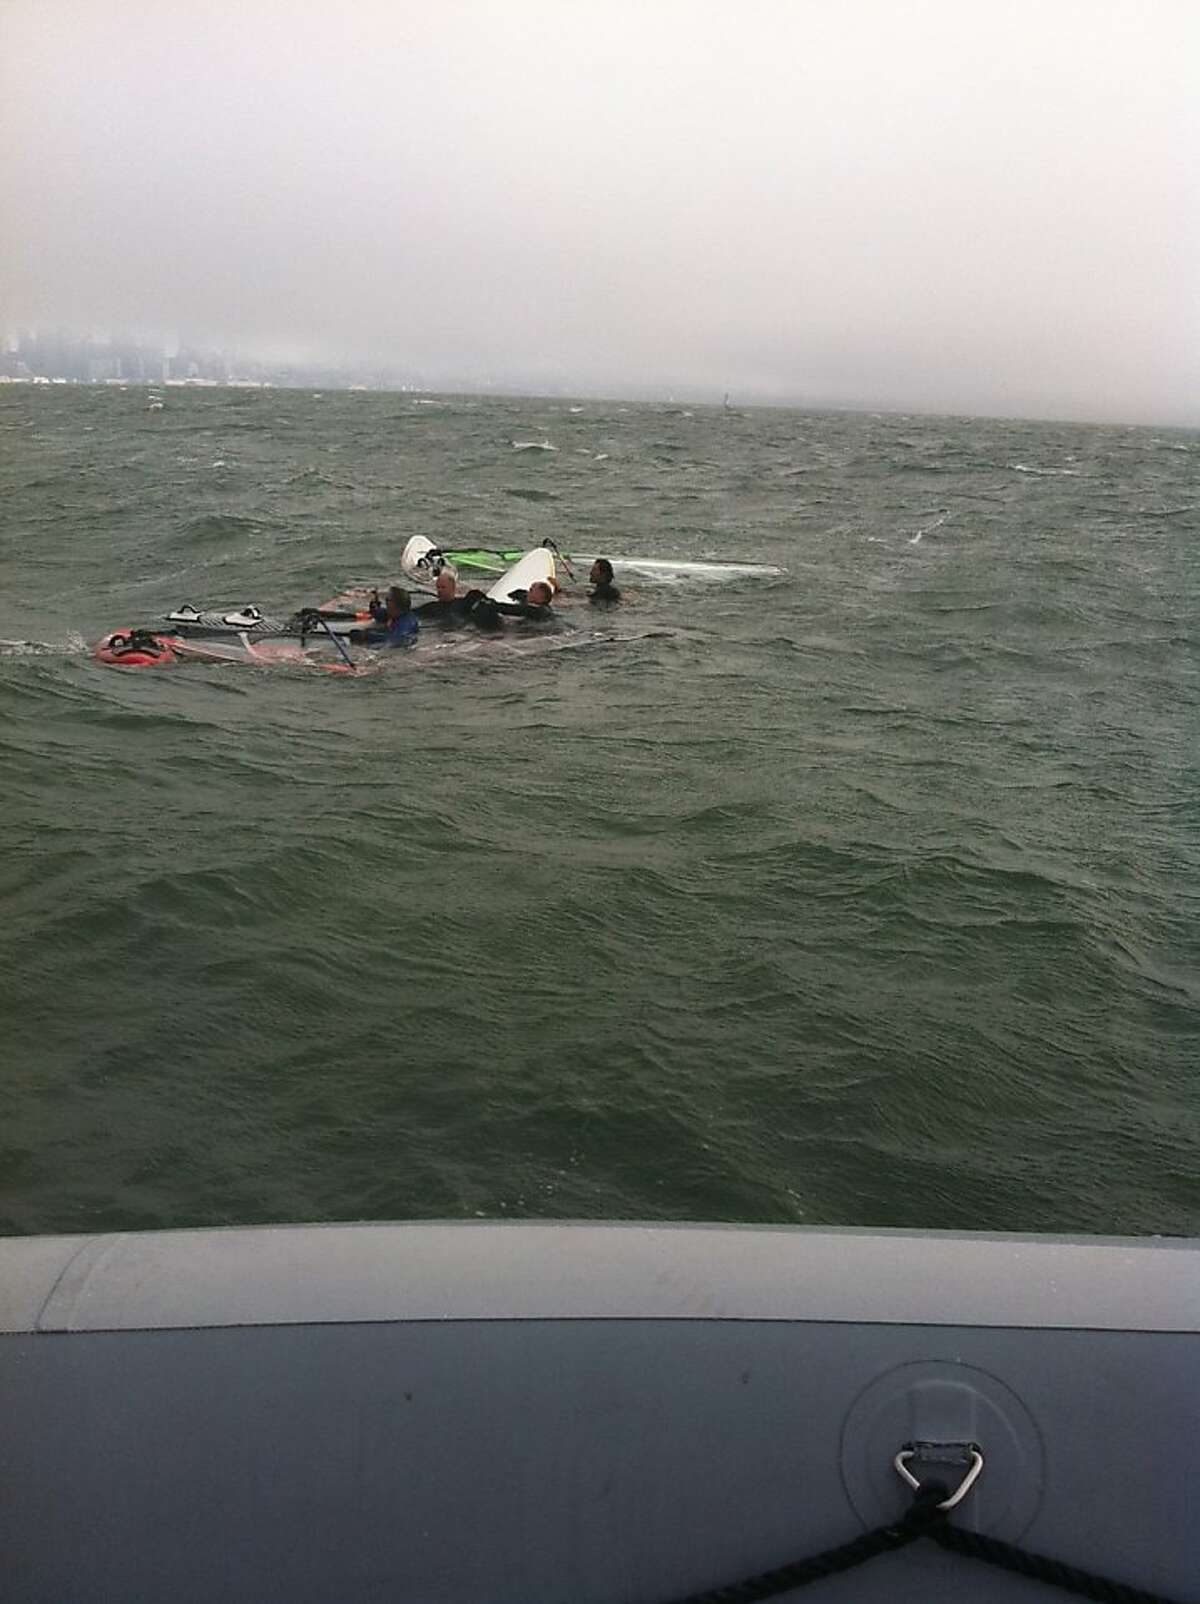 A group of windsurfers discovered and rescued a dog swimming in the bay Monday night, August 12, 2013.